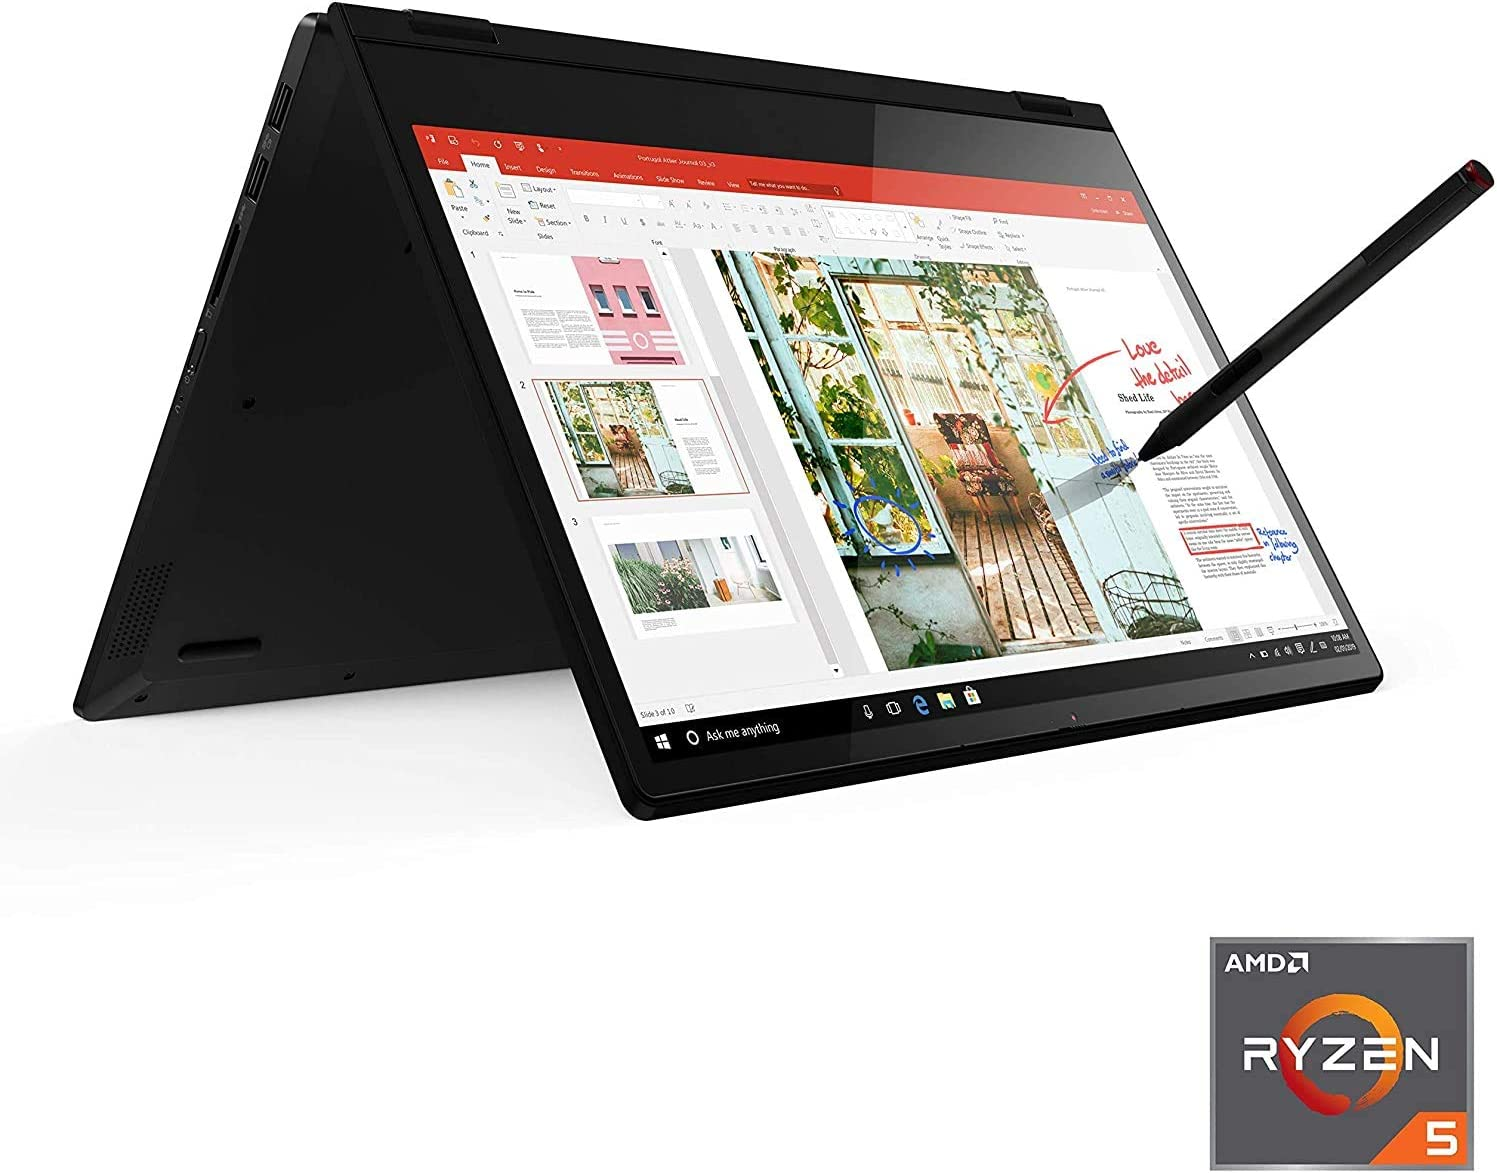 Lenovo Flex 14 2-in-1 Convertible Laptop, 14 Inch FHD Touchscreen Display, AMD Ryzen 5 3500U Processor, 12GB DDR4 RAM, 256GB NVMe SSD, Windows 10, 81SS000DUS, Black, Pen Included (Renewed)